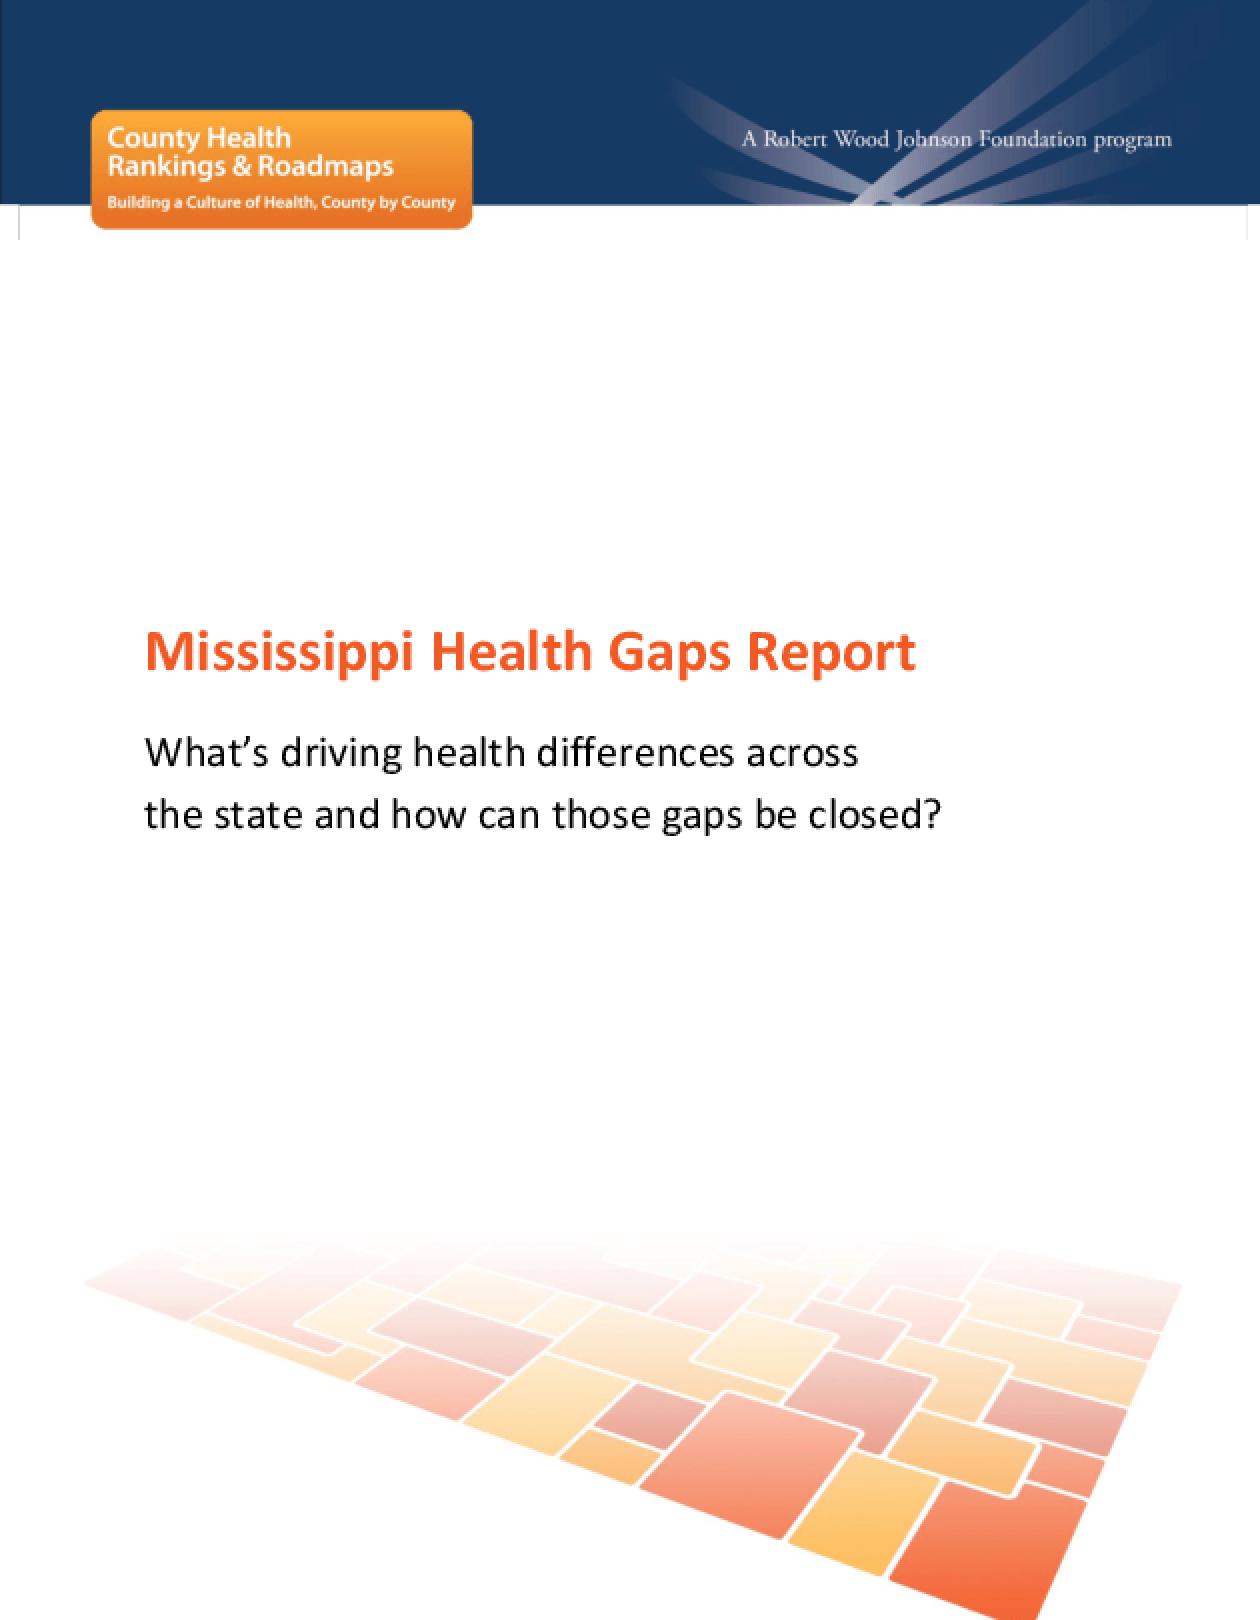 Mississippi Health Gaps Report: What's Driving Health Differences Across the State and How Can Those Gaps Be Closed?